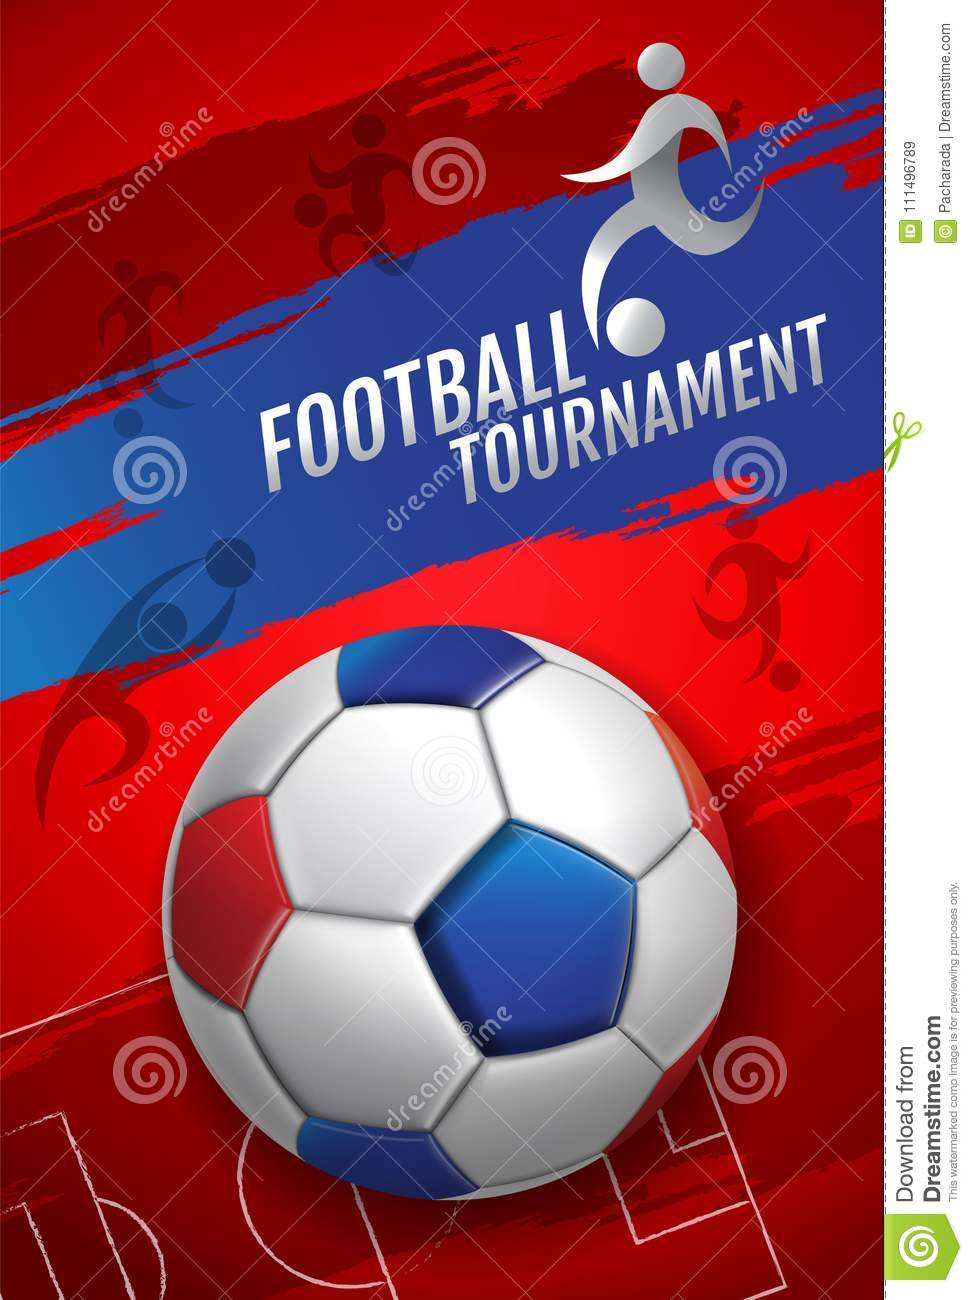 Football Tournament Soccer Cup Design Background Template Vector Illustration Stock Vector Illustration Of Moscow Ball 111496789